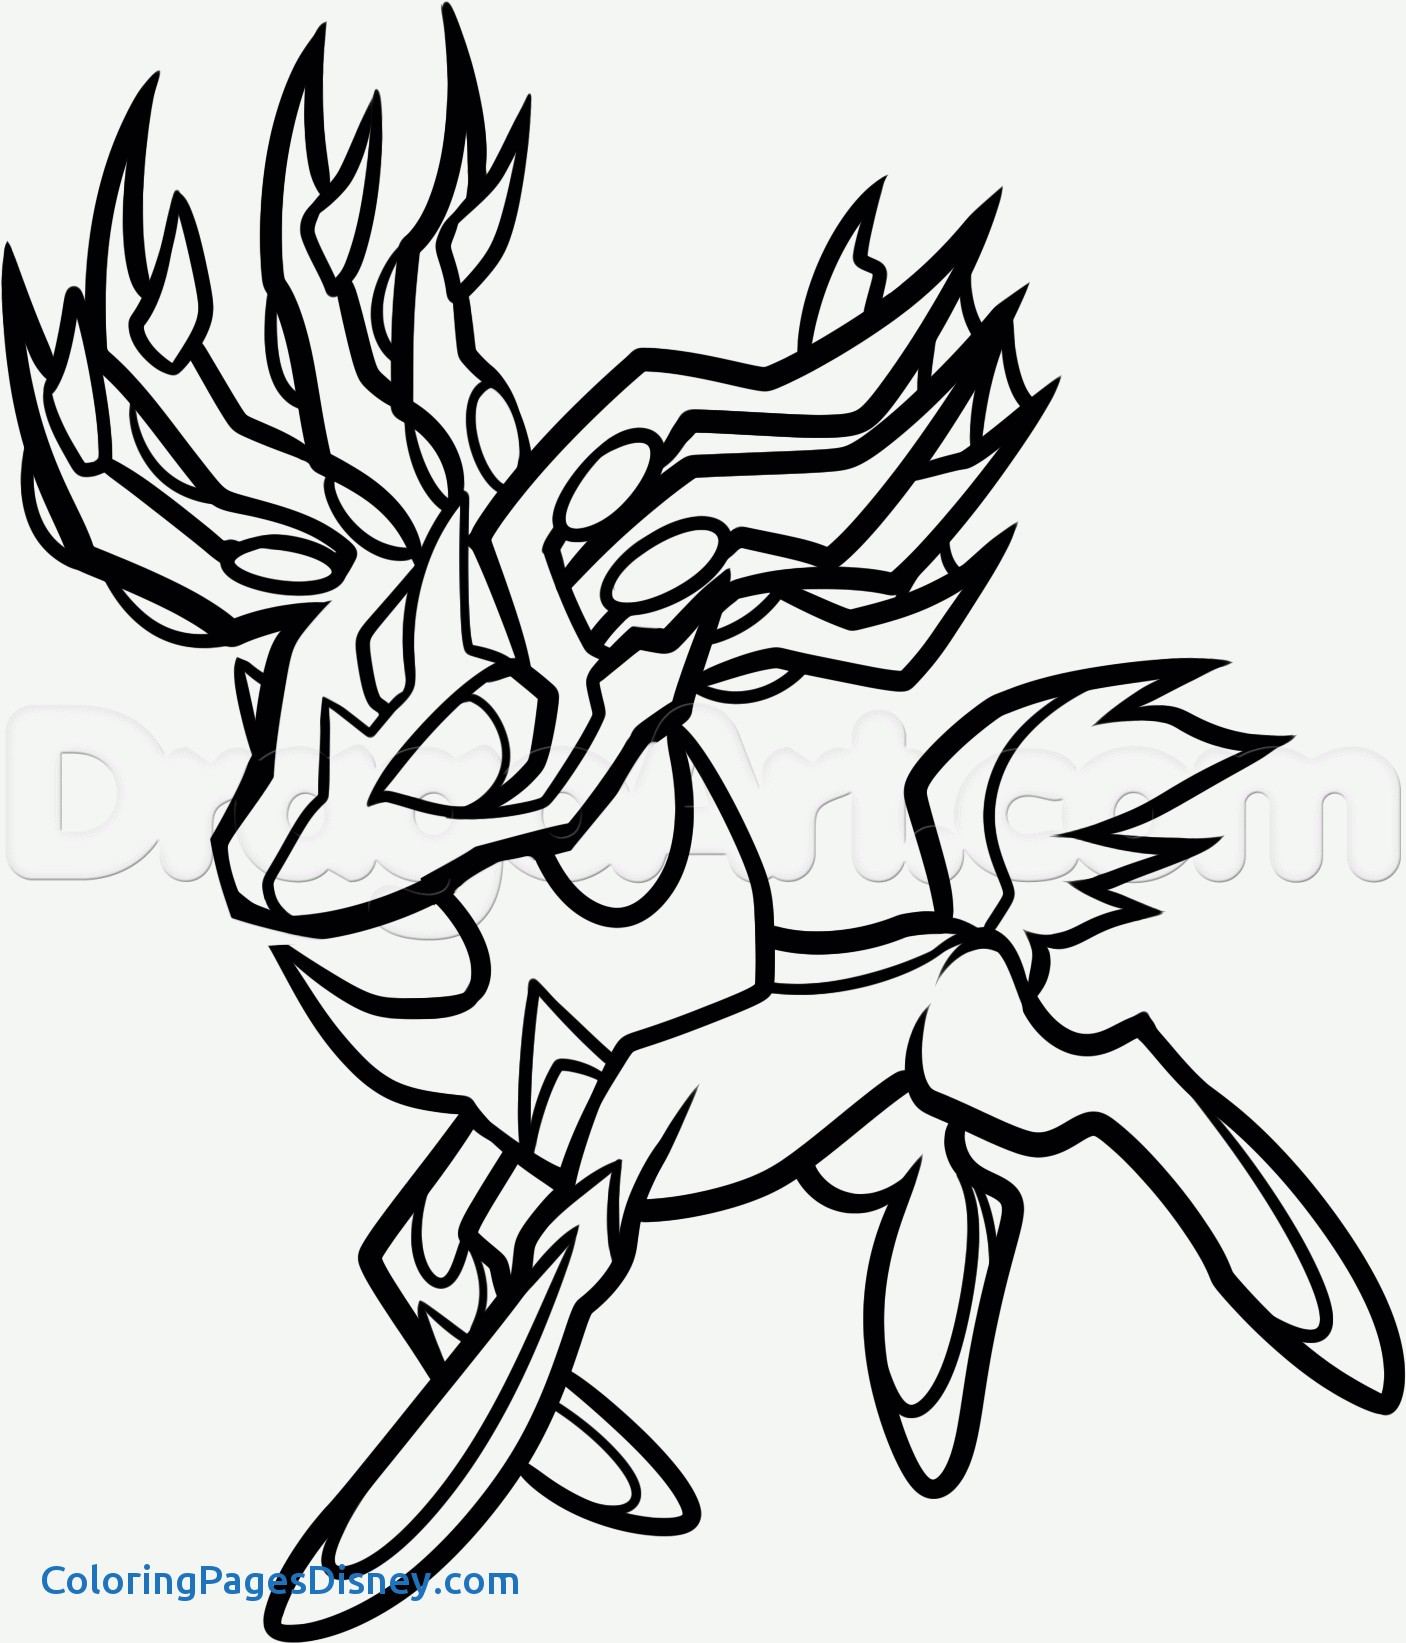 1406x1643 Pokemon Coloring Pages Xerneas Unique Xerneas Coloring Page